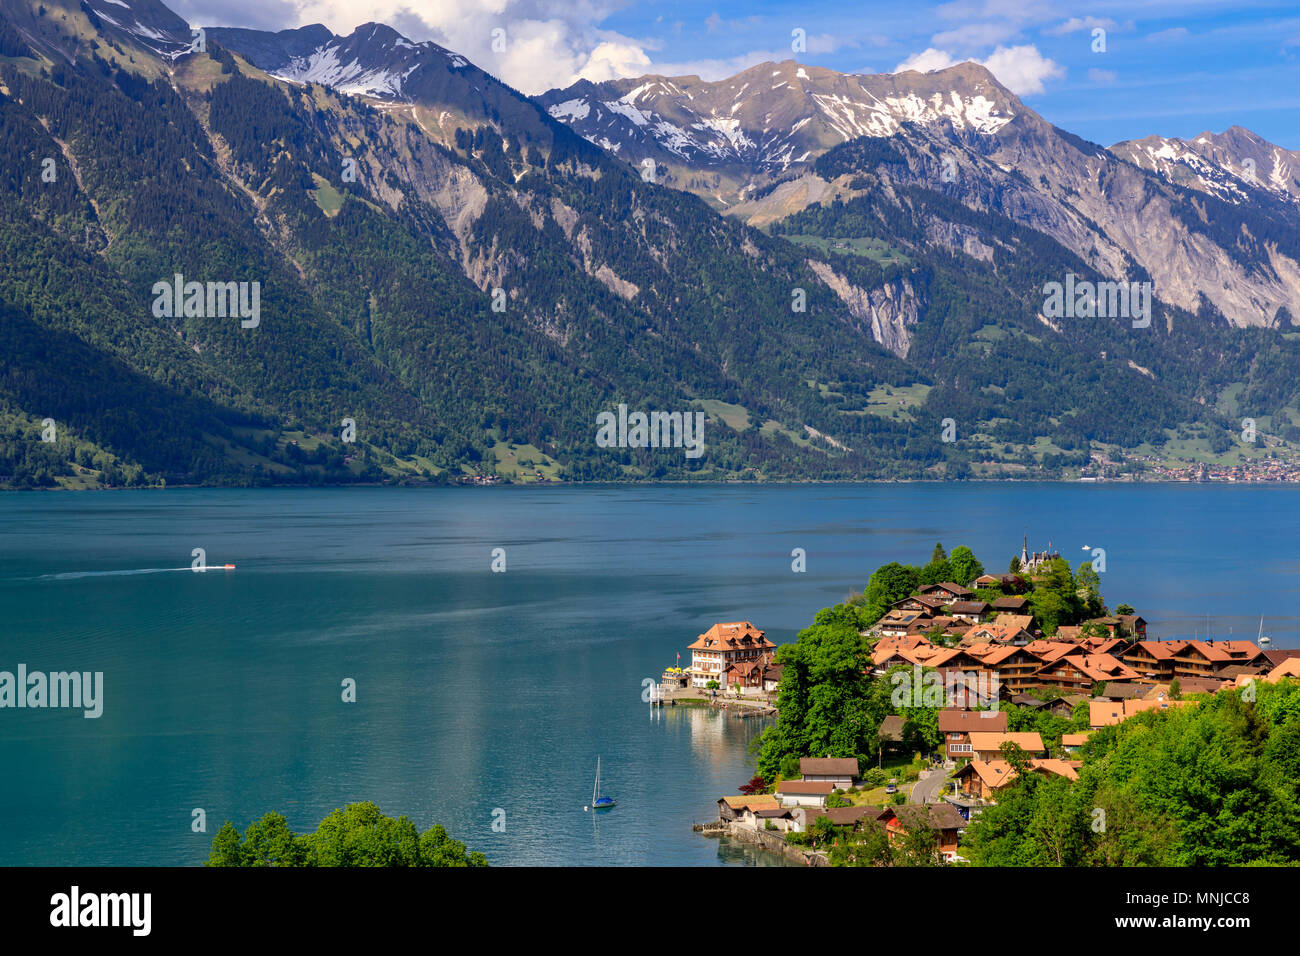 Lake Brienz with the village Iseltwald, Bernese Oberland, Switzerland - Stock Image